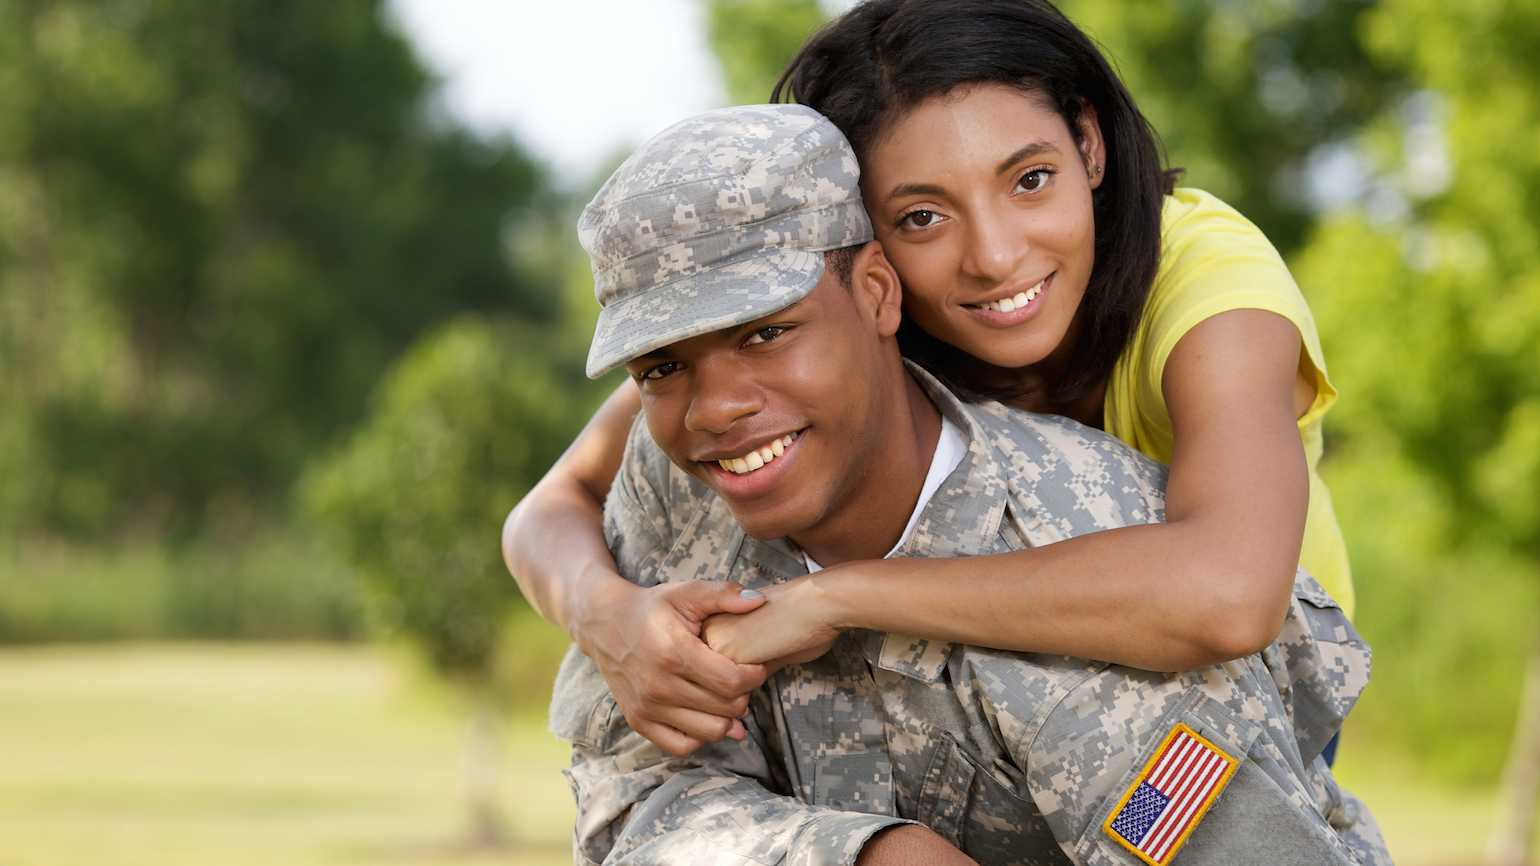 Support for a military family